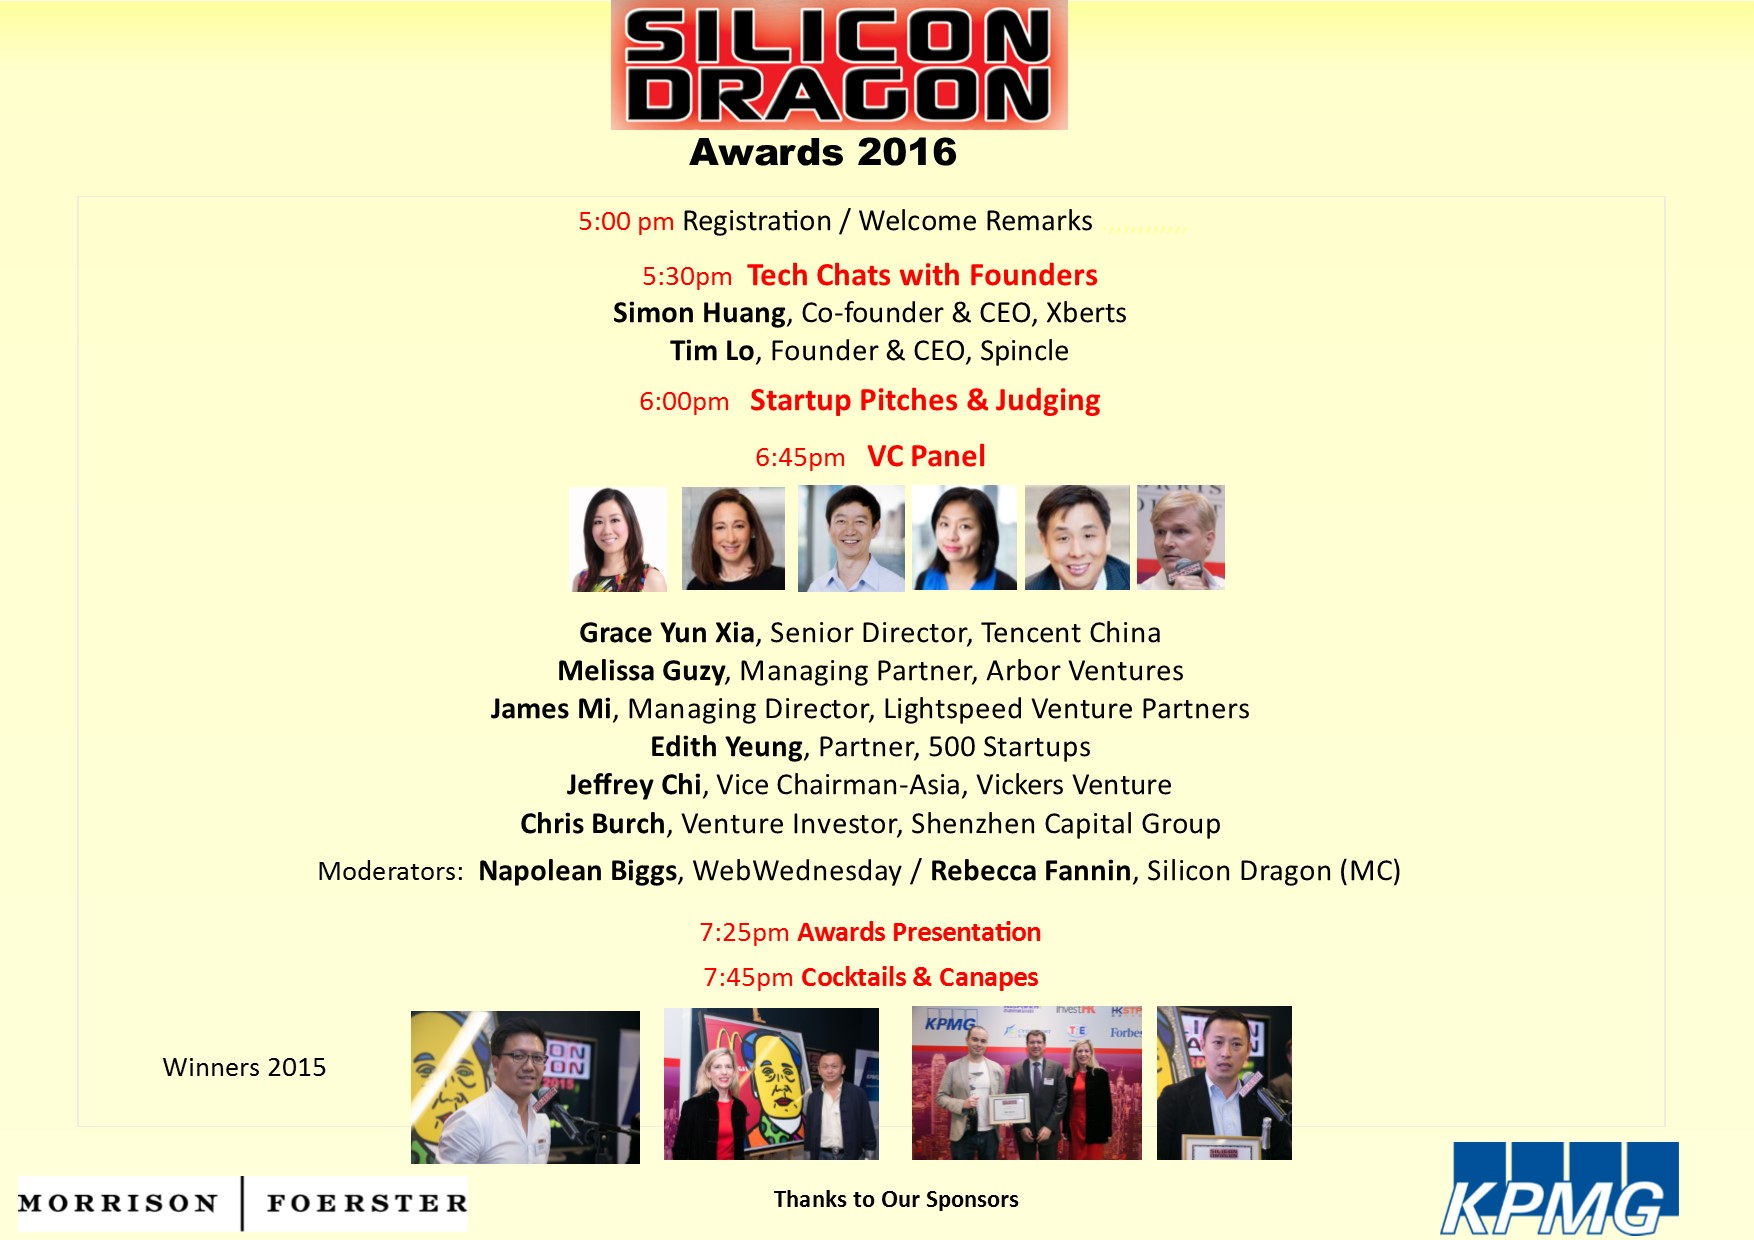 Silicon Dragon Awards 2016